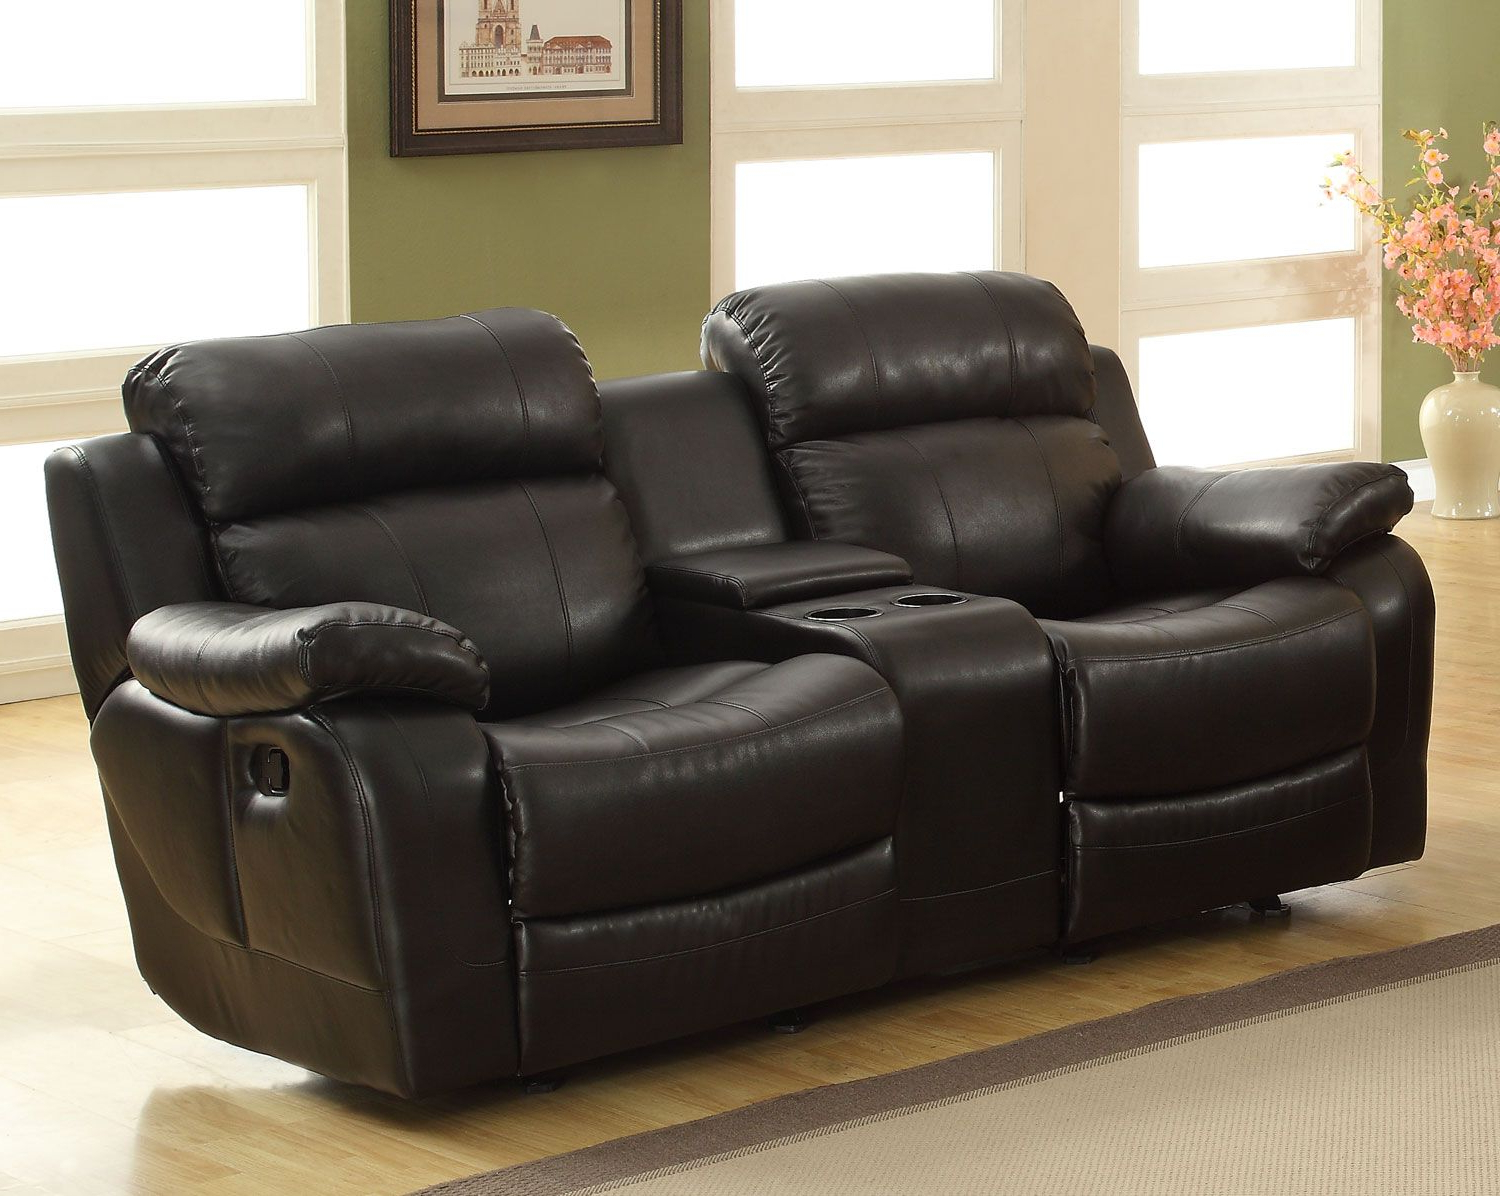 Homelegance Marille Love Seat Glider Recliner With Center Console Throughout Most Recently Released Travis Cognac Leather 6 Piece Power Reclining Sectionals With Power Headrest & Usb (View 11 of 20)